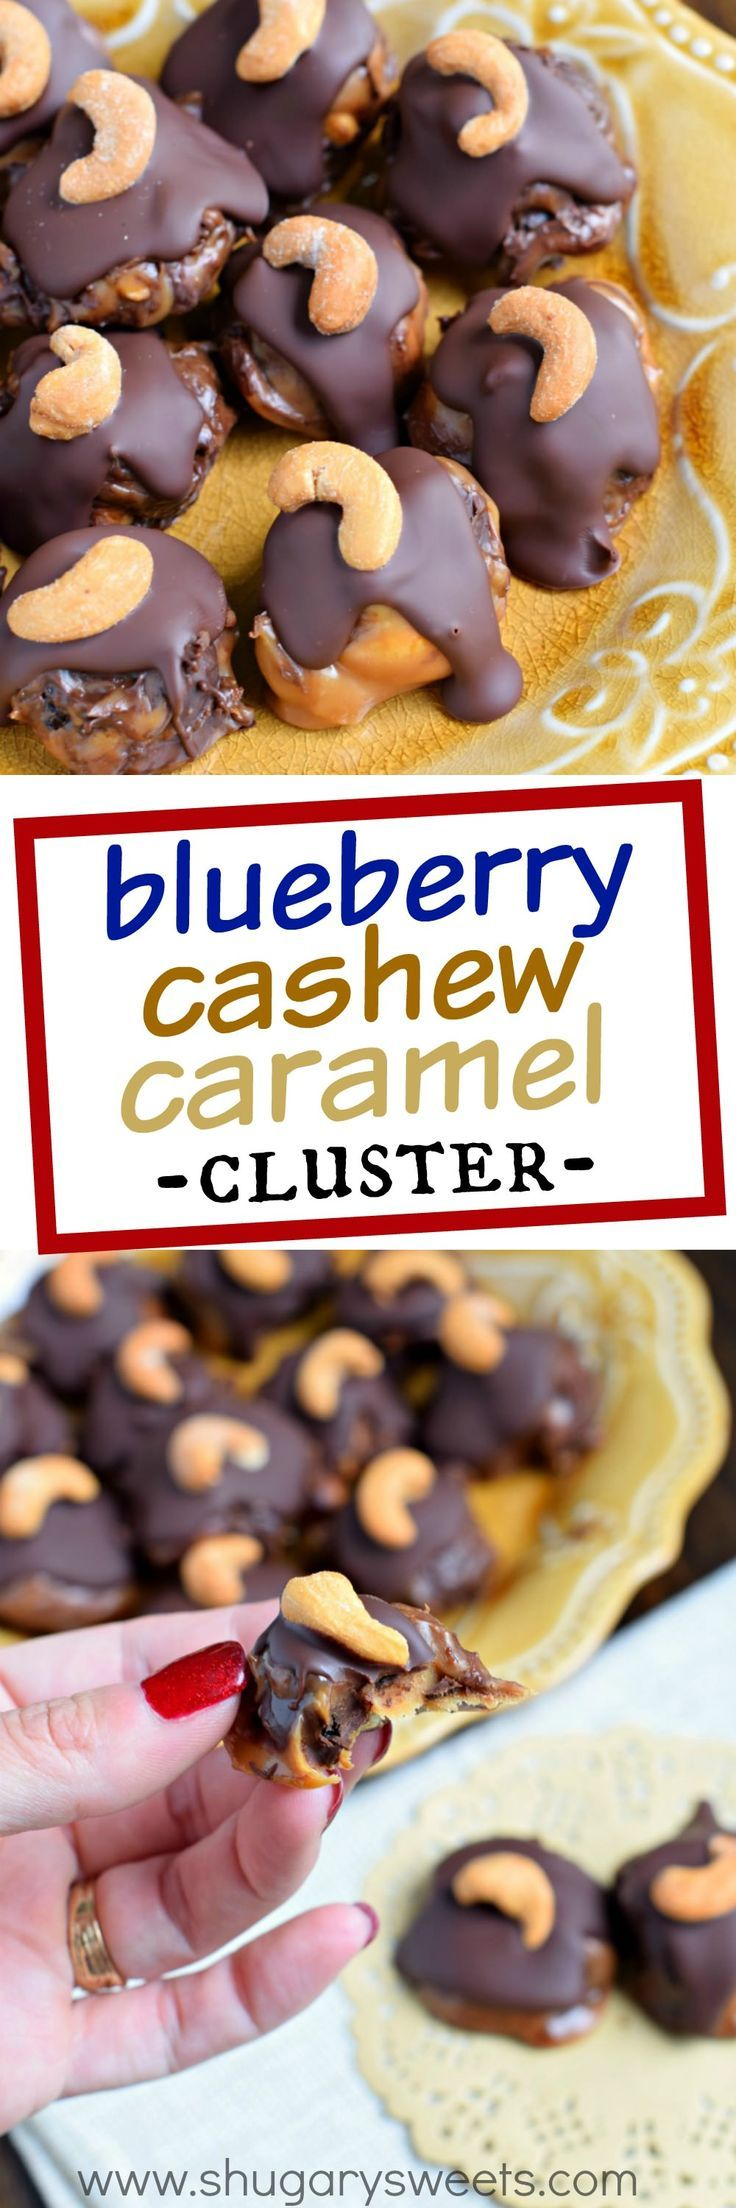 ... Recipes on Pinterest | Candied pecans, Rice krispie treats and Caramel